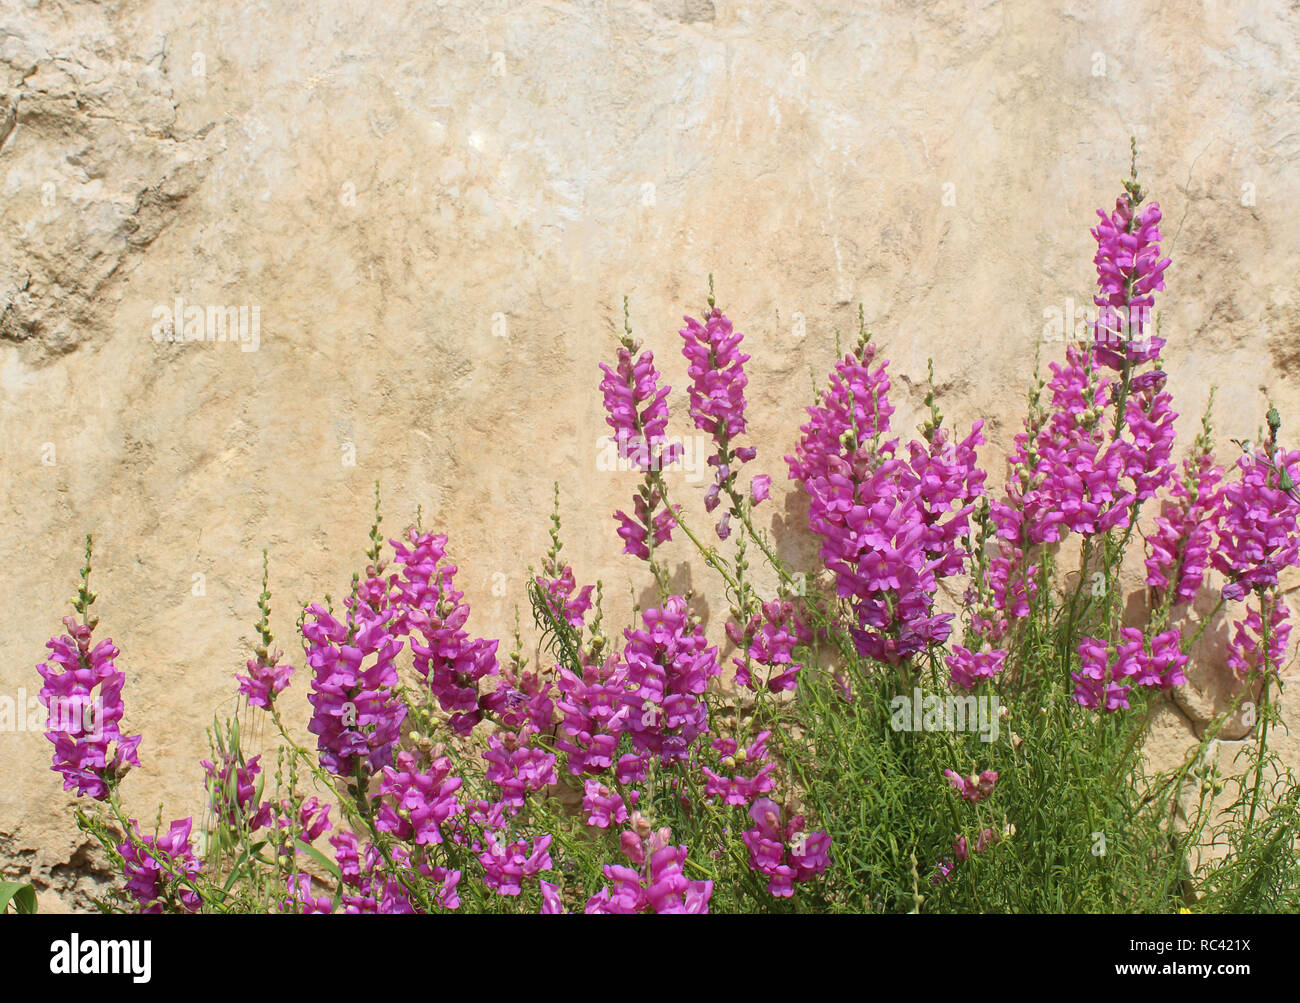 mediterranean scene: pink wild flowers in front of a bright wall - Stock Image